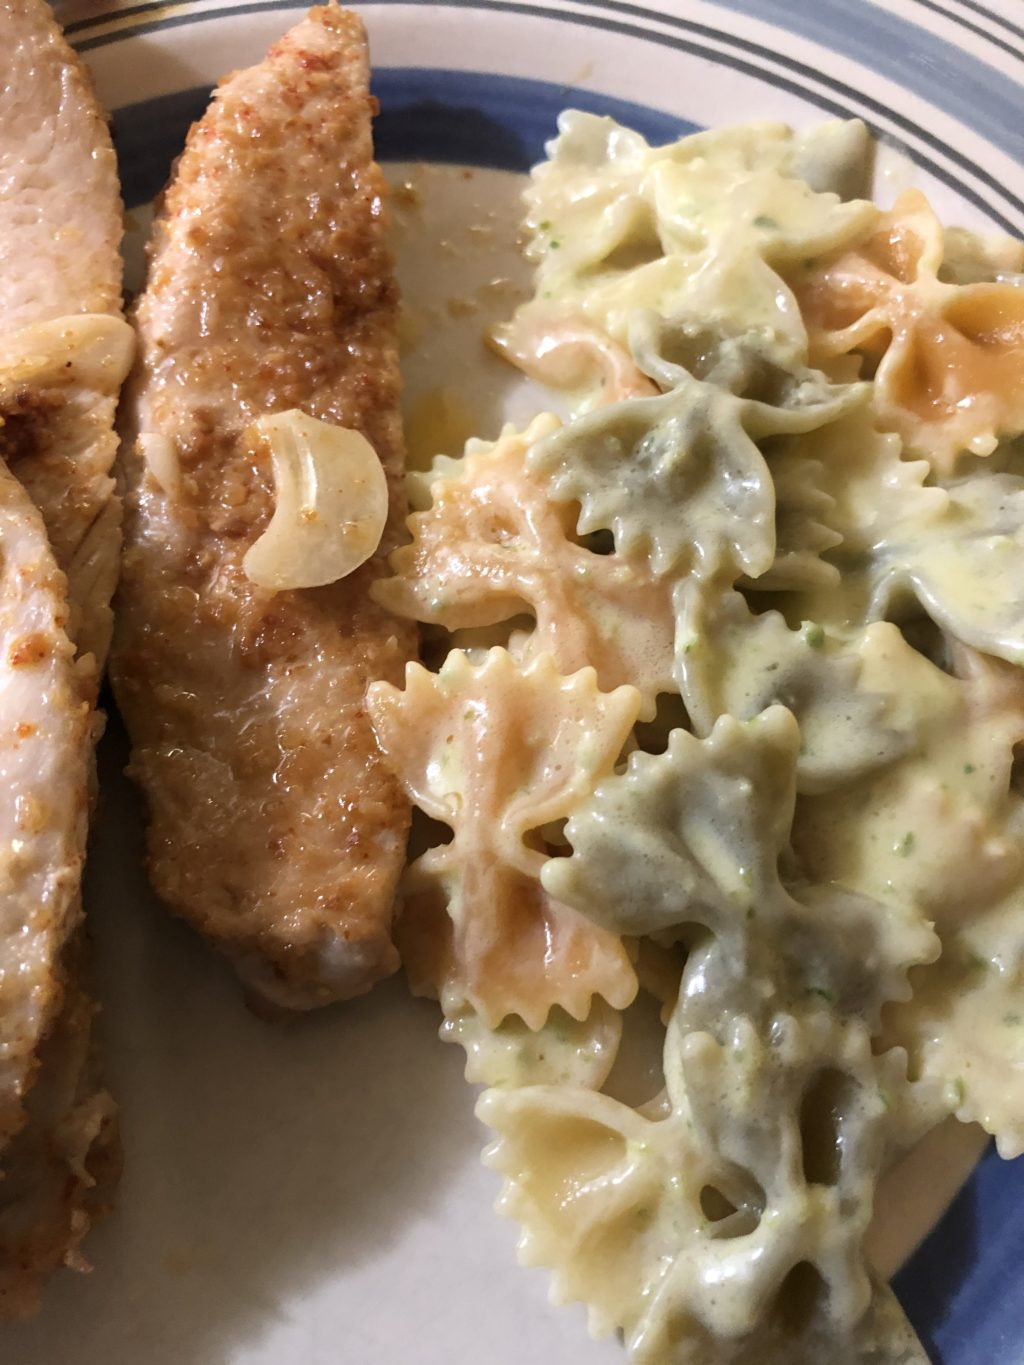 creamy pesto pasta on a dinner plate alongside grilled chicken